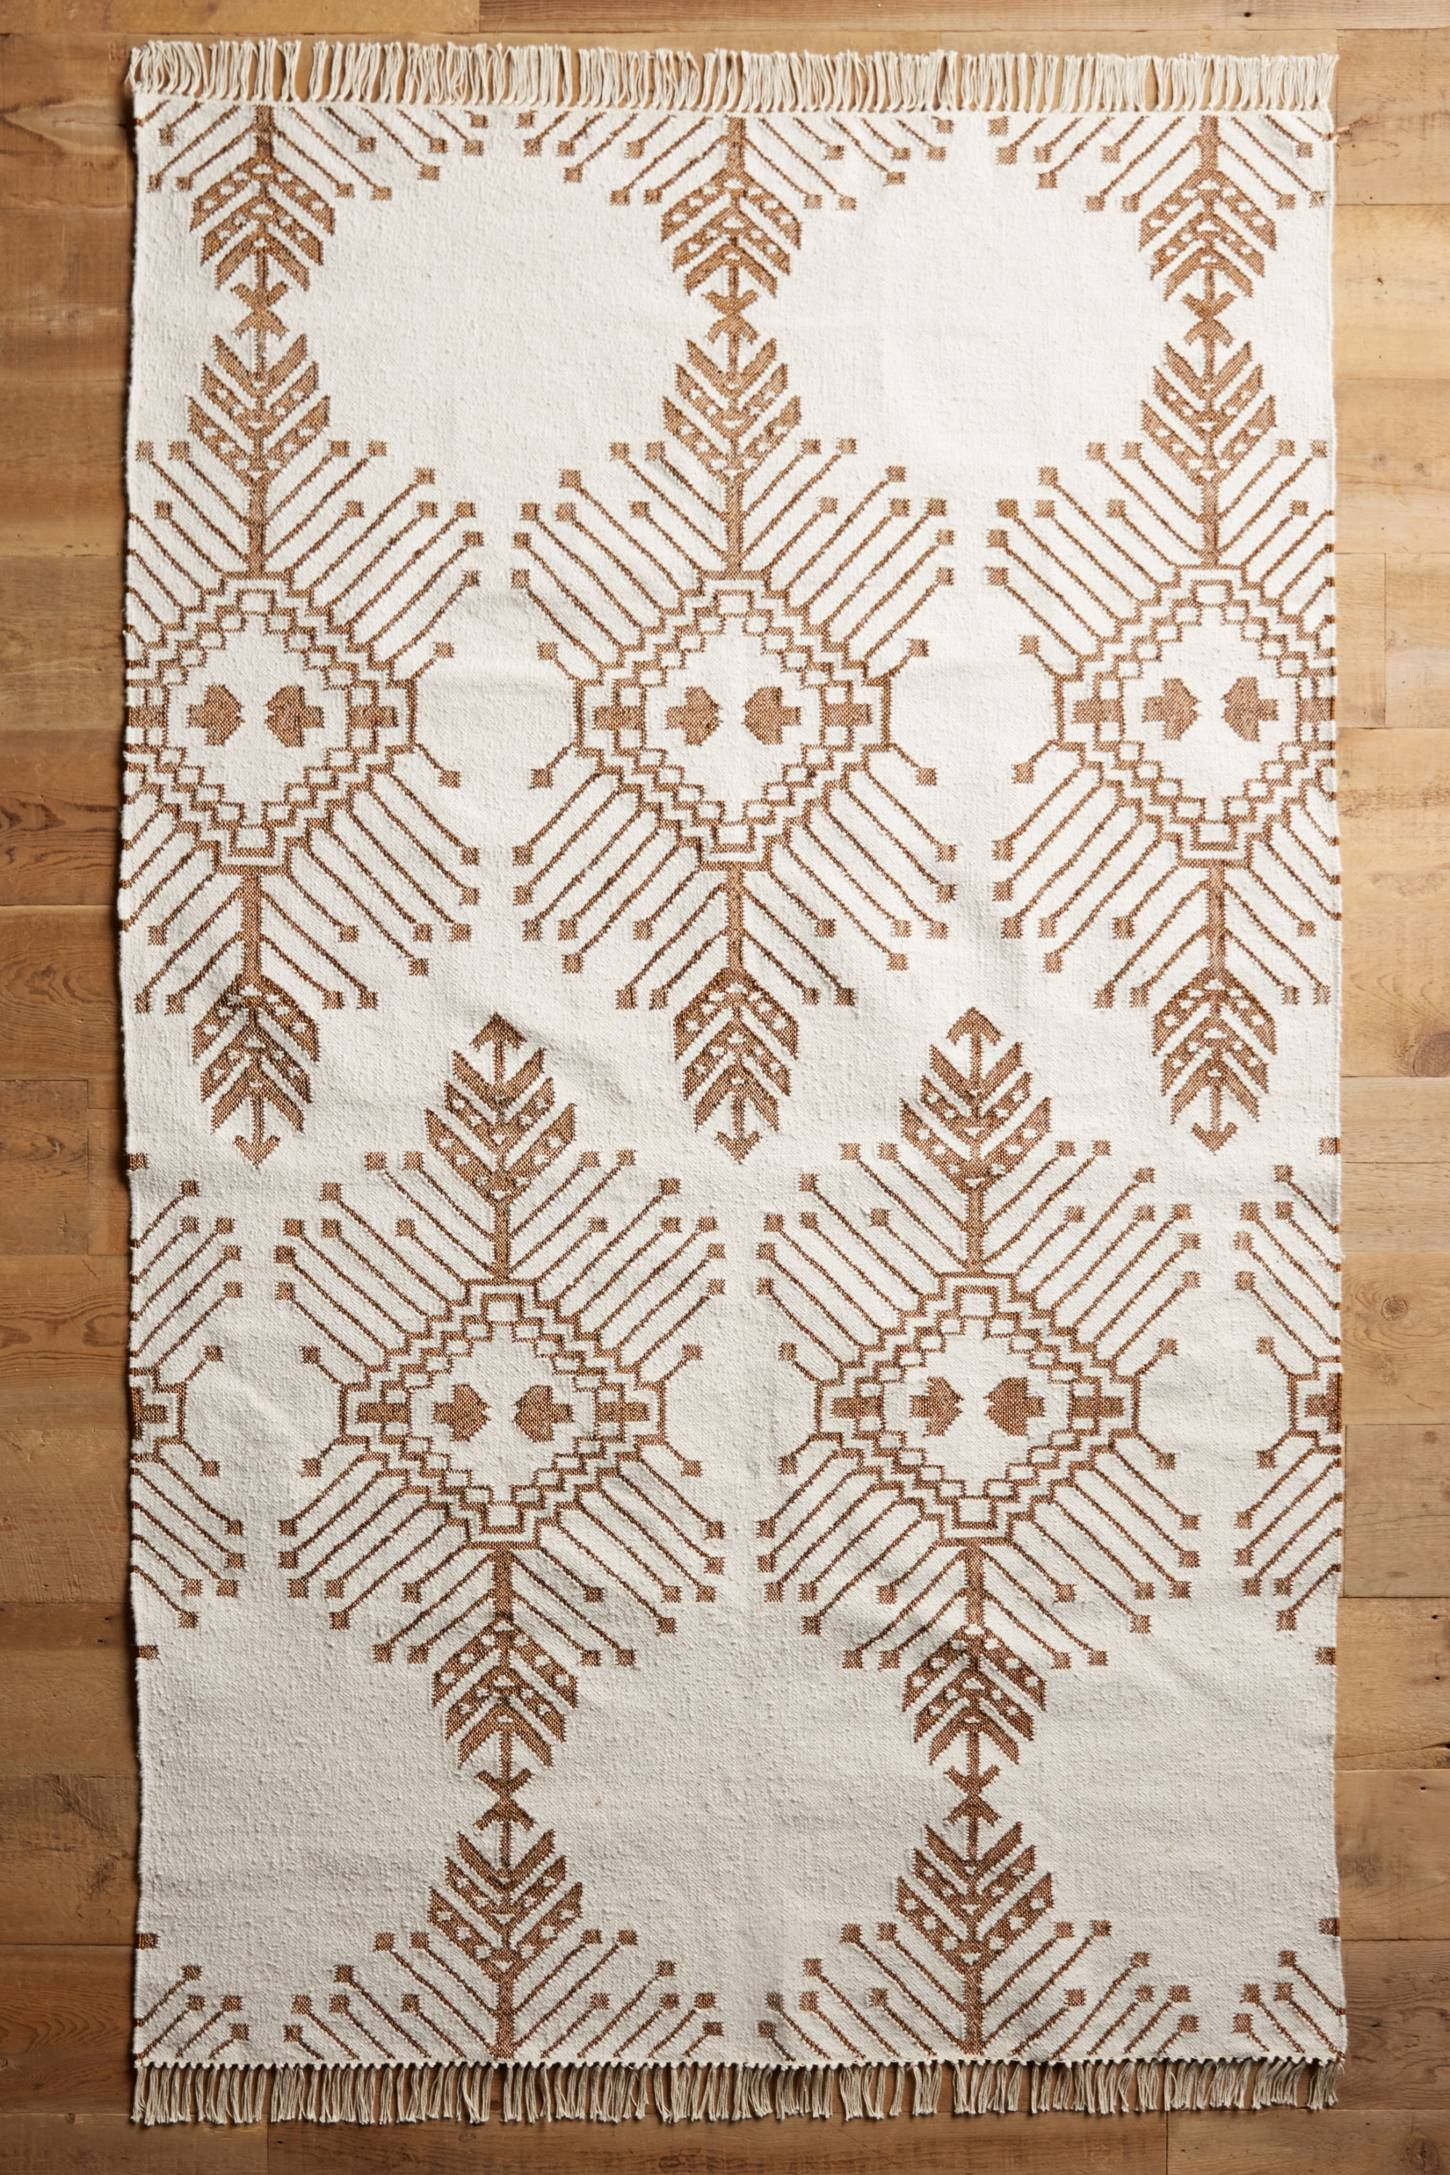 Support Grip Rug Pad Home Decor Rugs Woven Rug